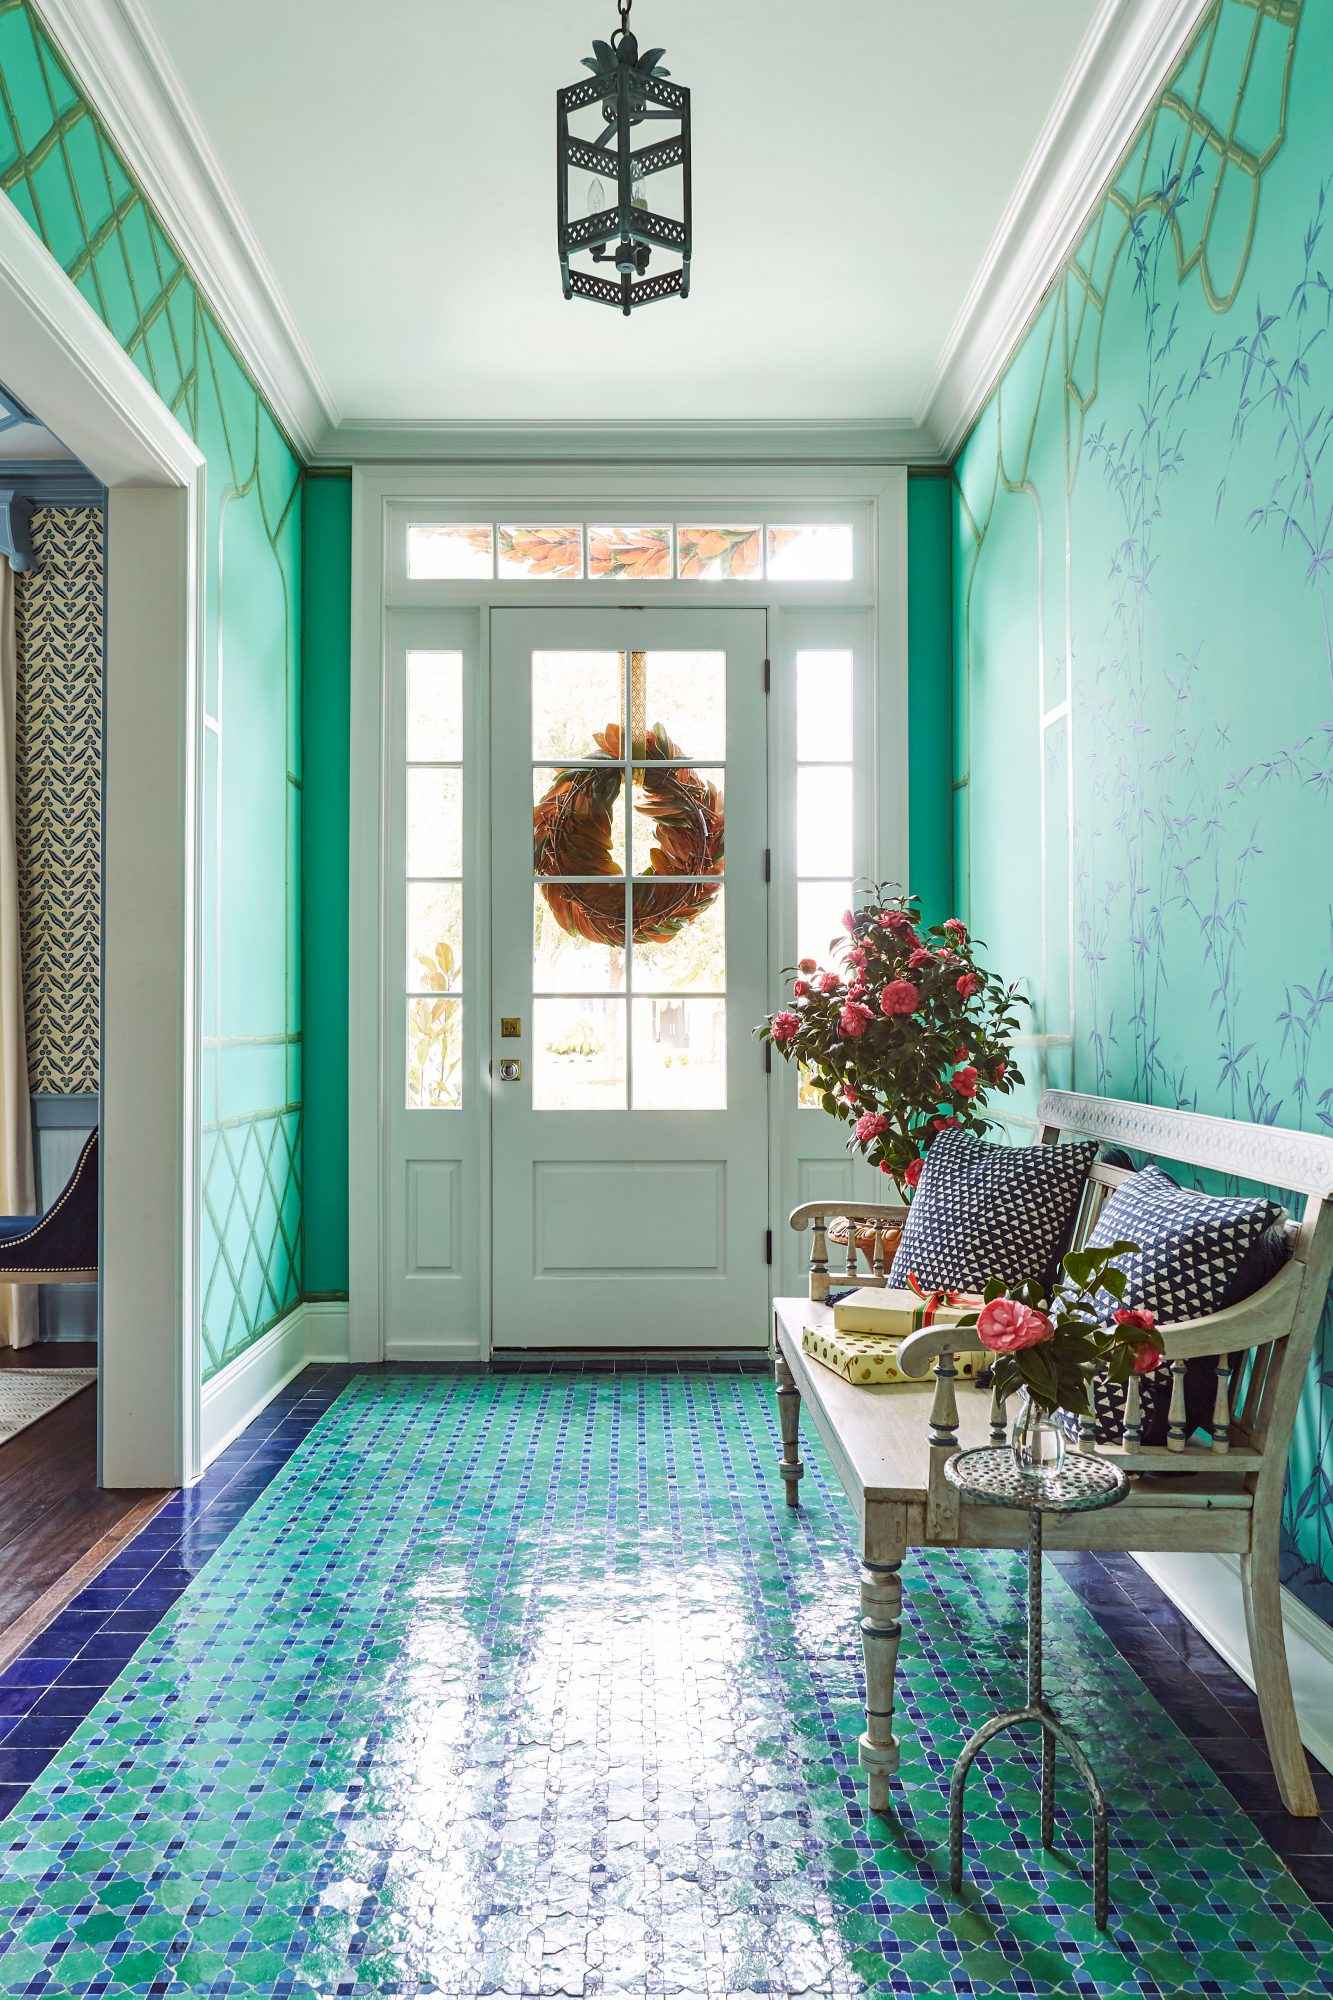 Andrew Howard Home Decorated for Christmas Blue and Green Foyer